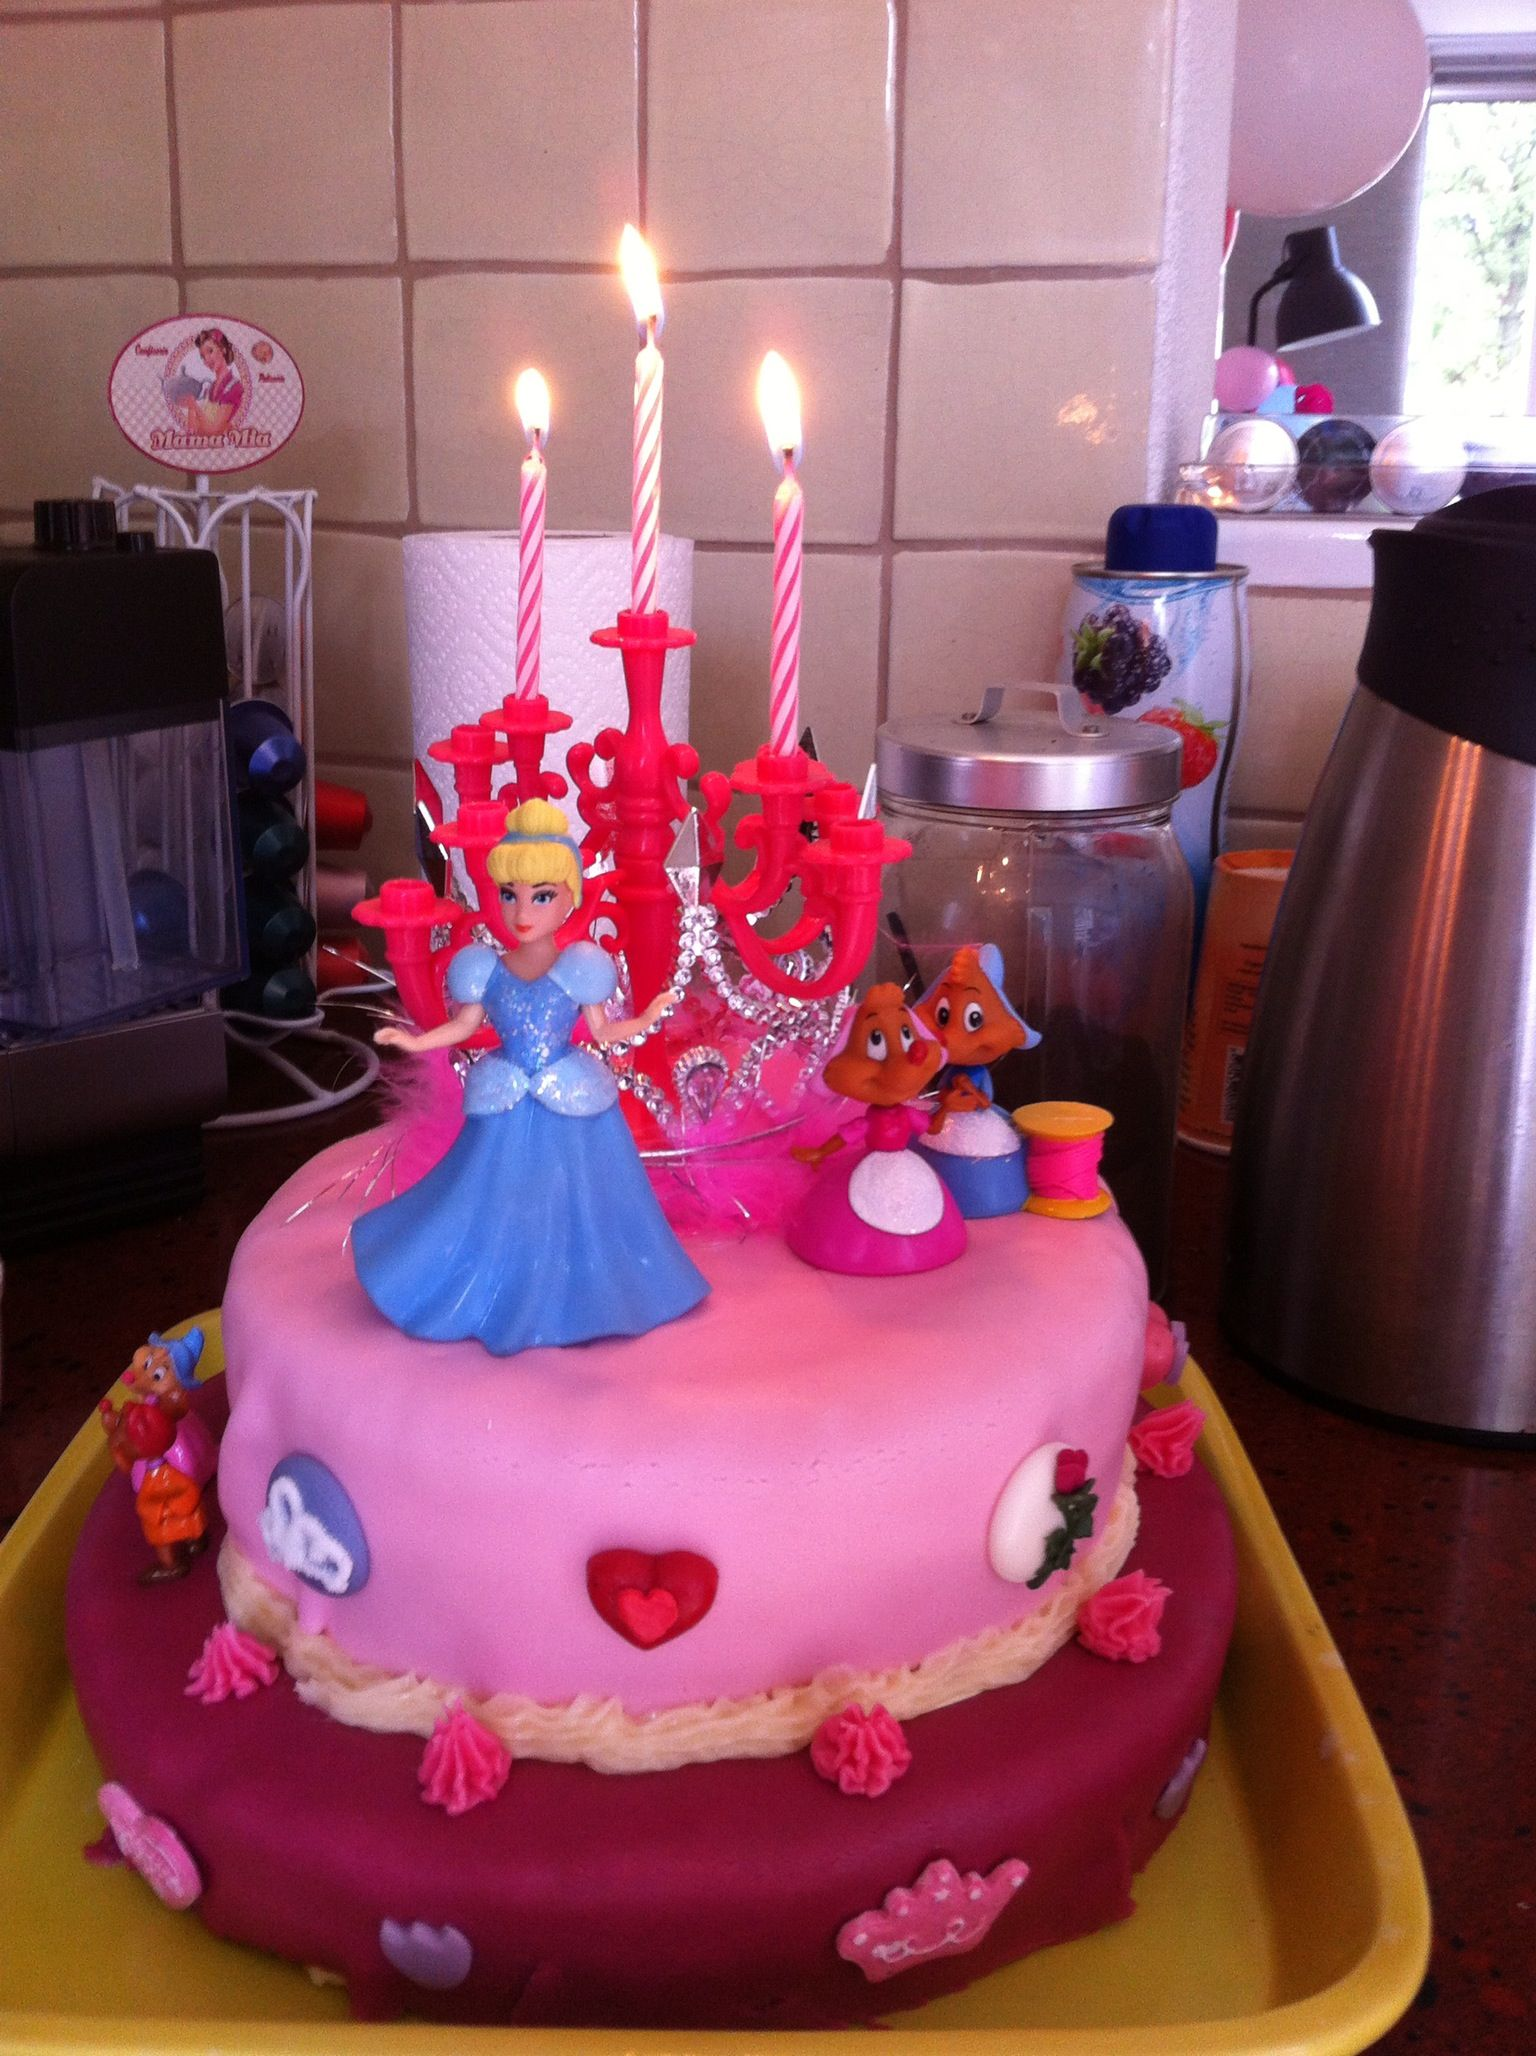 Birthday cake for my 3 years old girl 3 year old ideaphoograpy